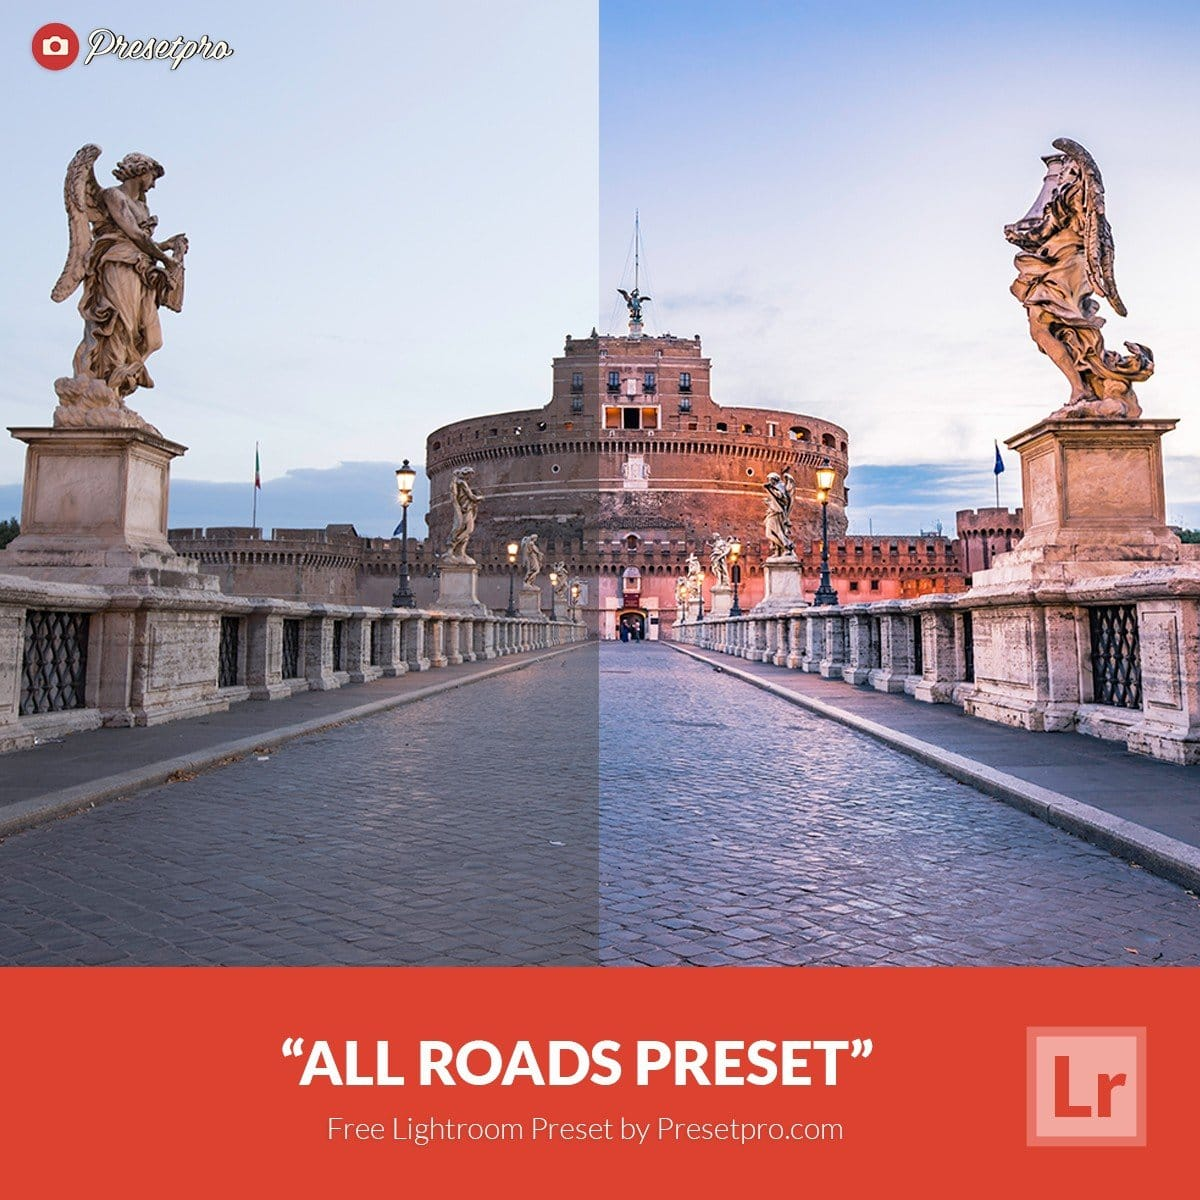 Free-Lightroom-Preset-All-Roads-Presetpro.com